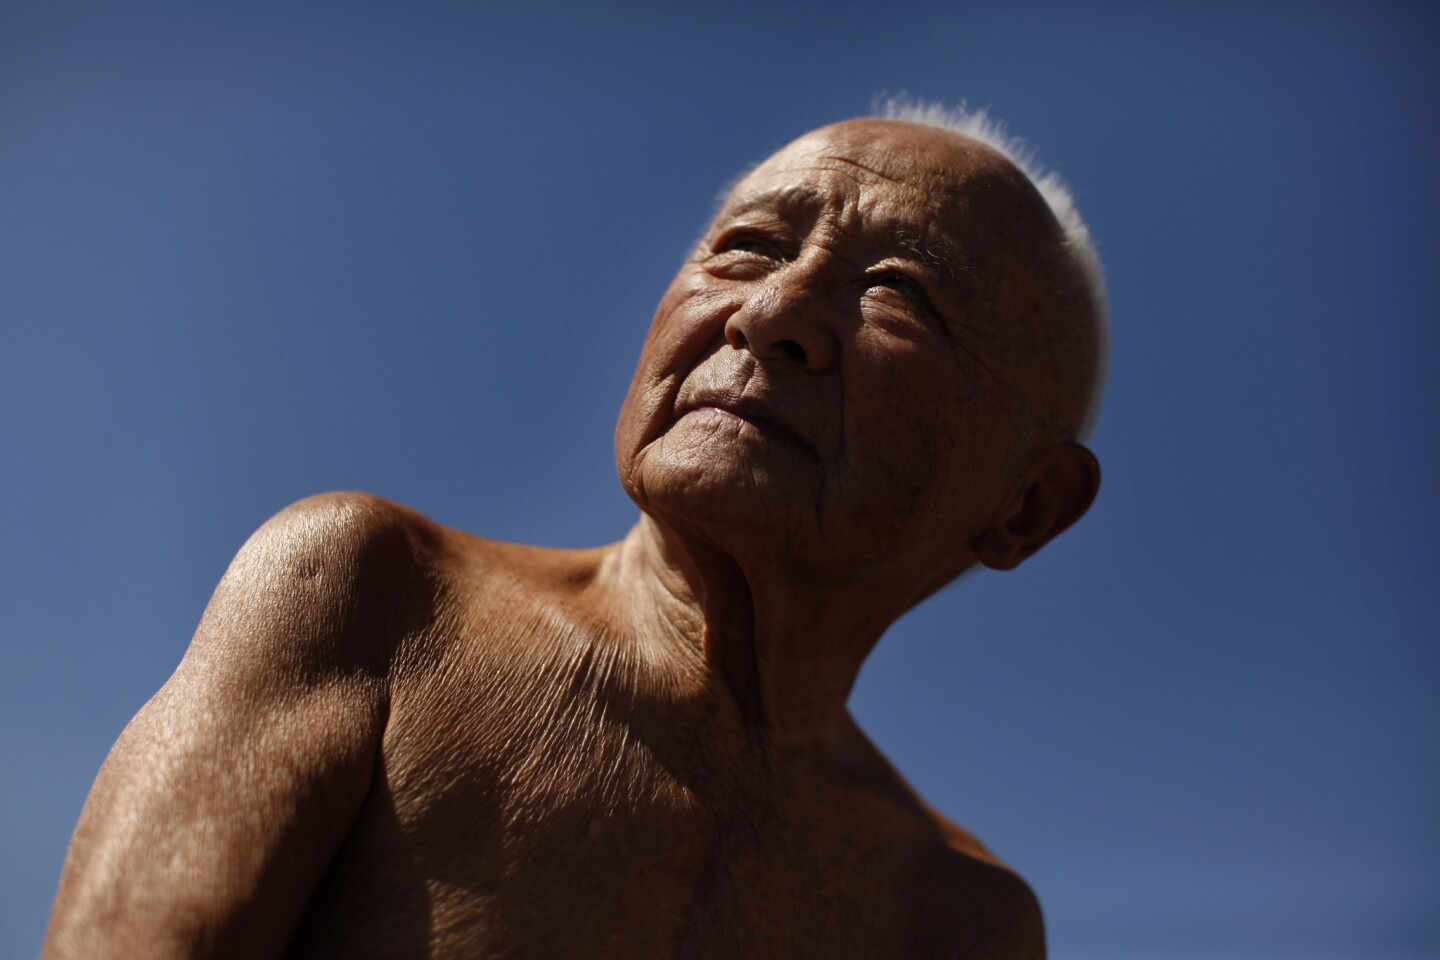 Sammy Lee, two–time Olympic diving champion, is seen in 2011 at age 90 as part of the inaugural class to be inducted into the L.A. Unified School District High School Sports Hall of Fame.